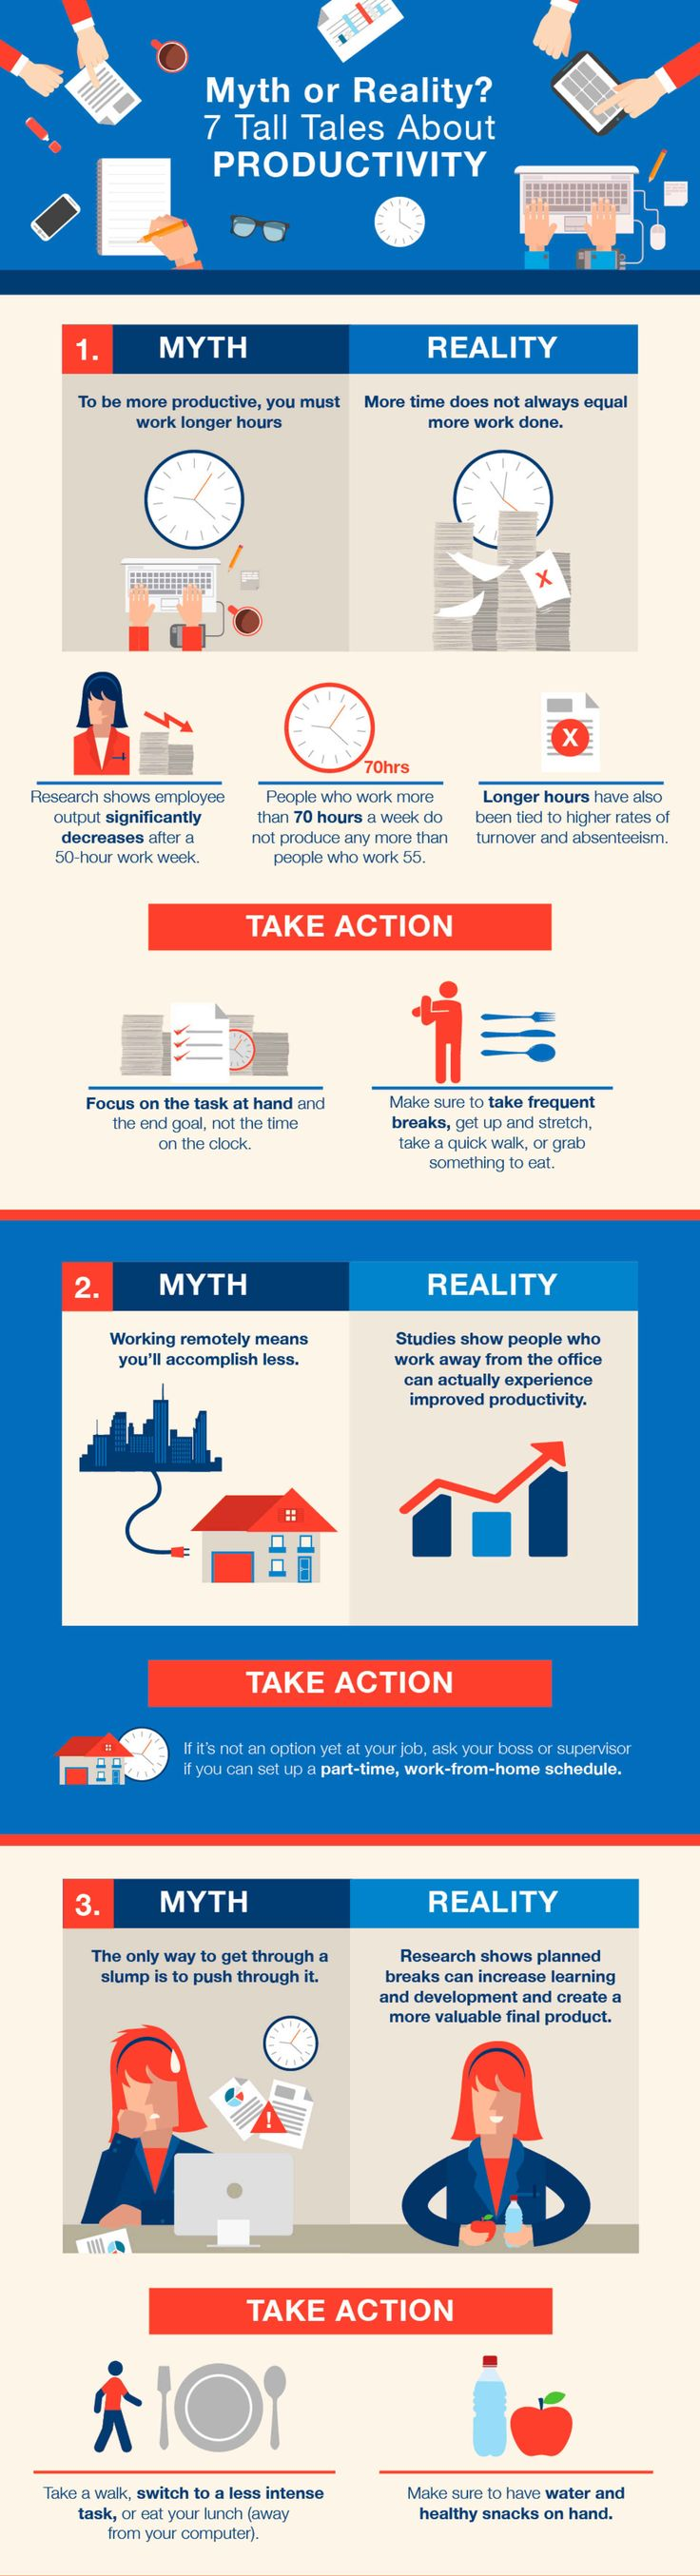 http://theultralinx.com/2015/12/7-myths-about-how-to-maximize-productivity/